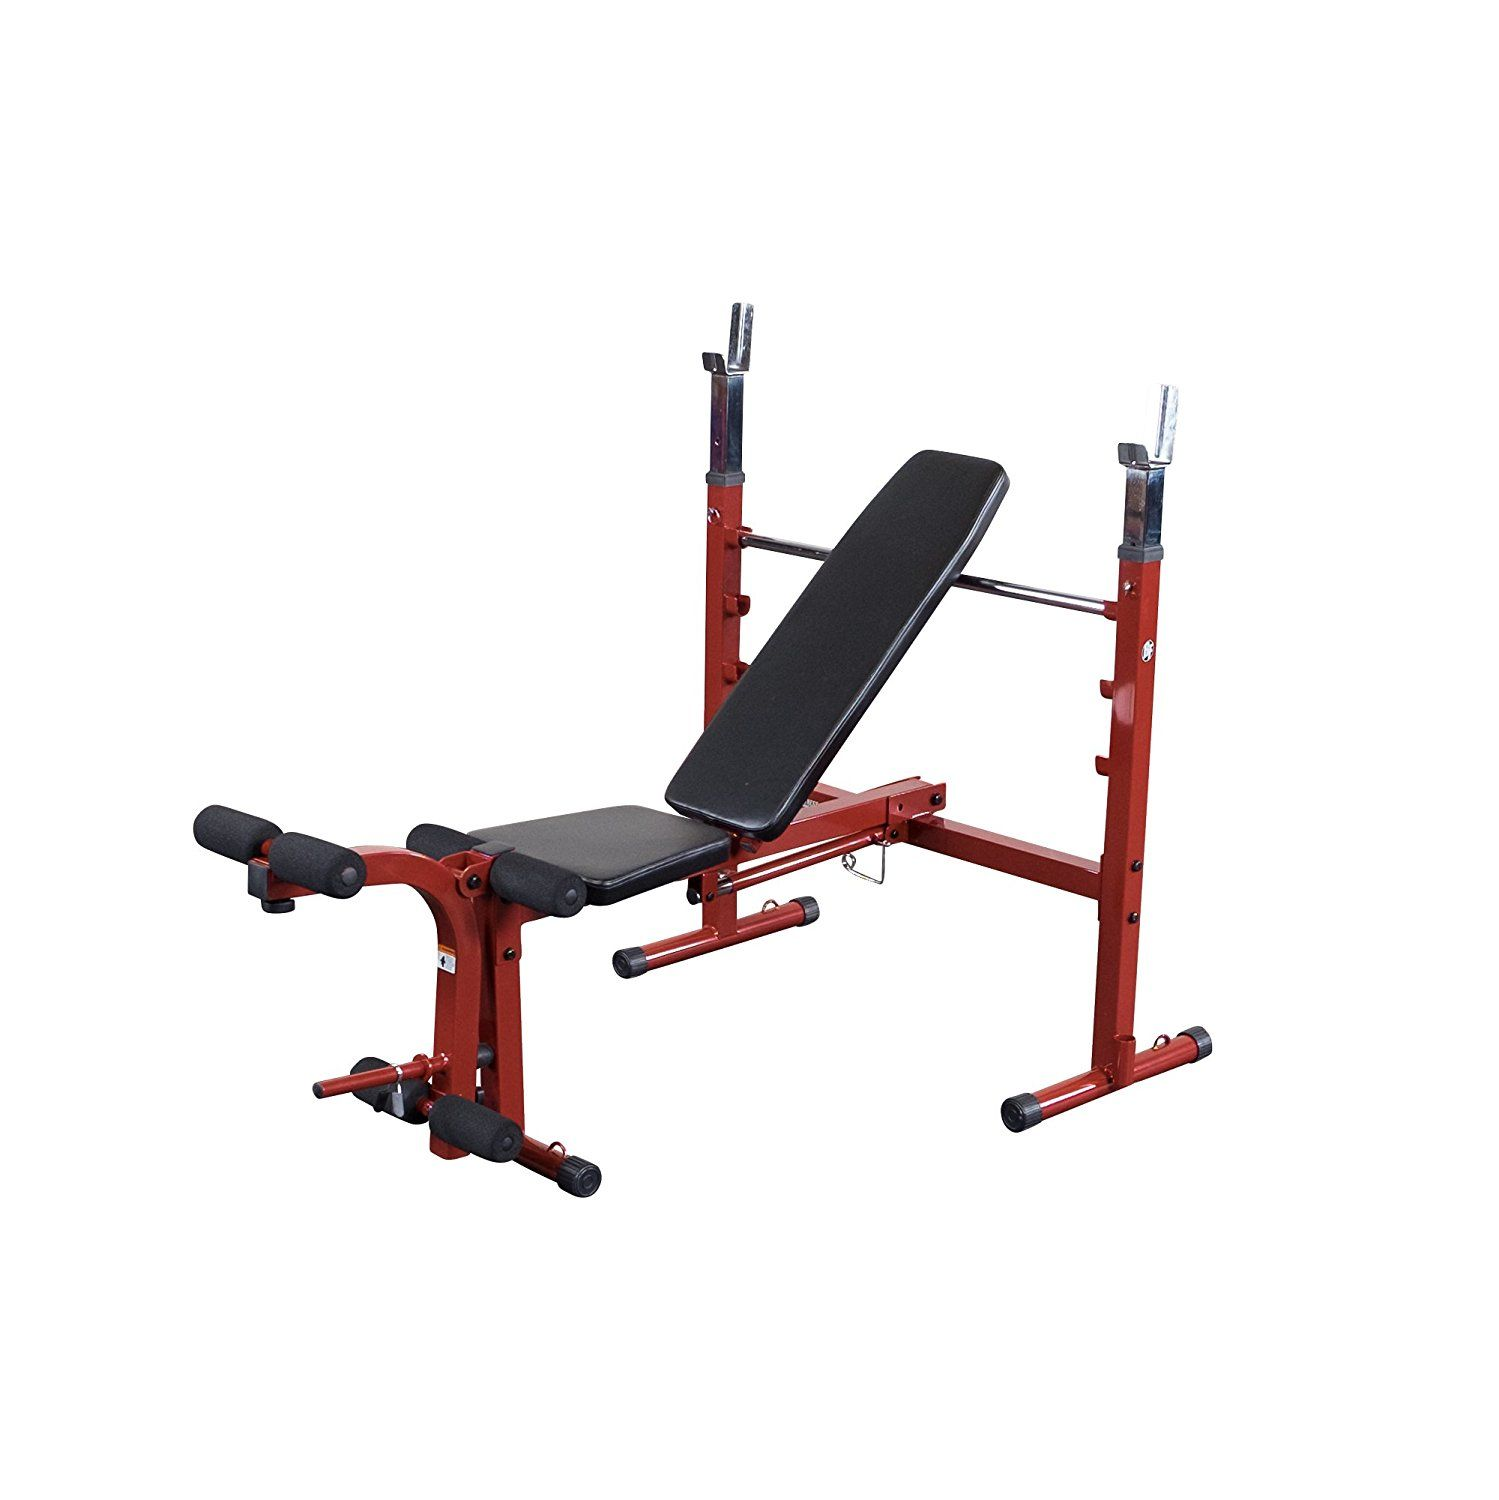 Top 5 Best Olympic Weight Bench (2020) All You Need To